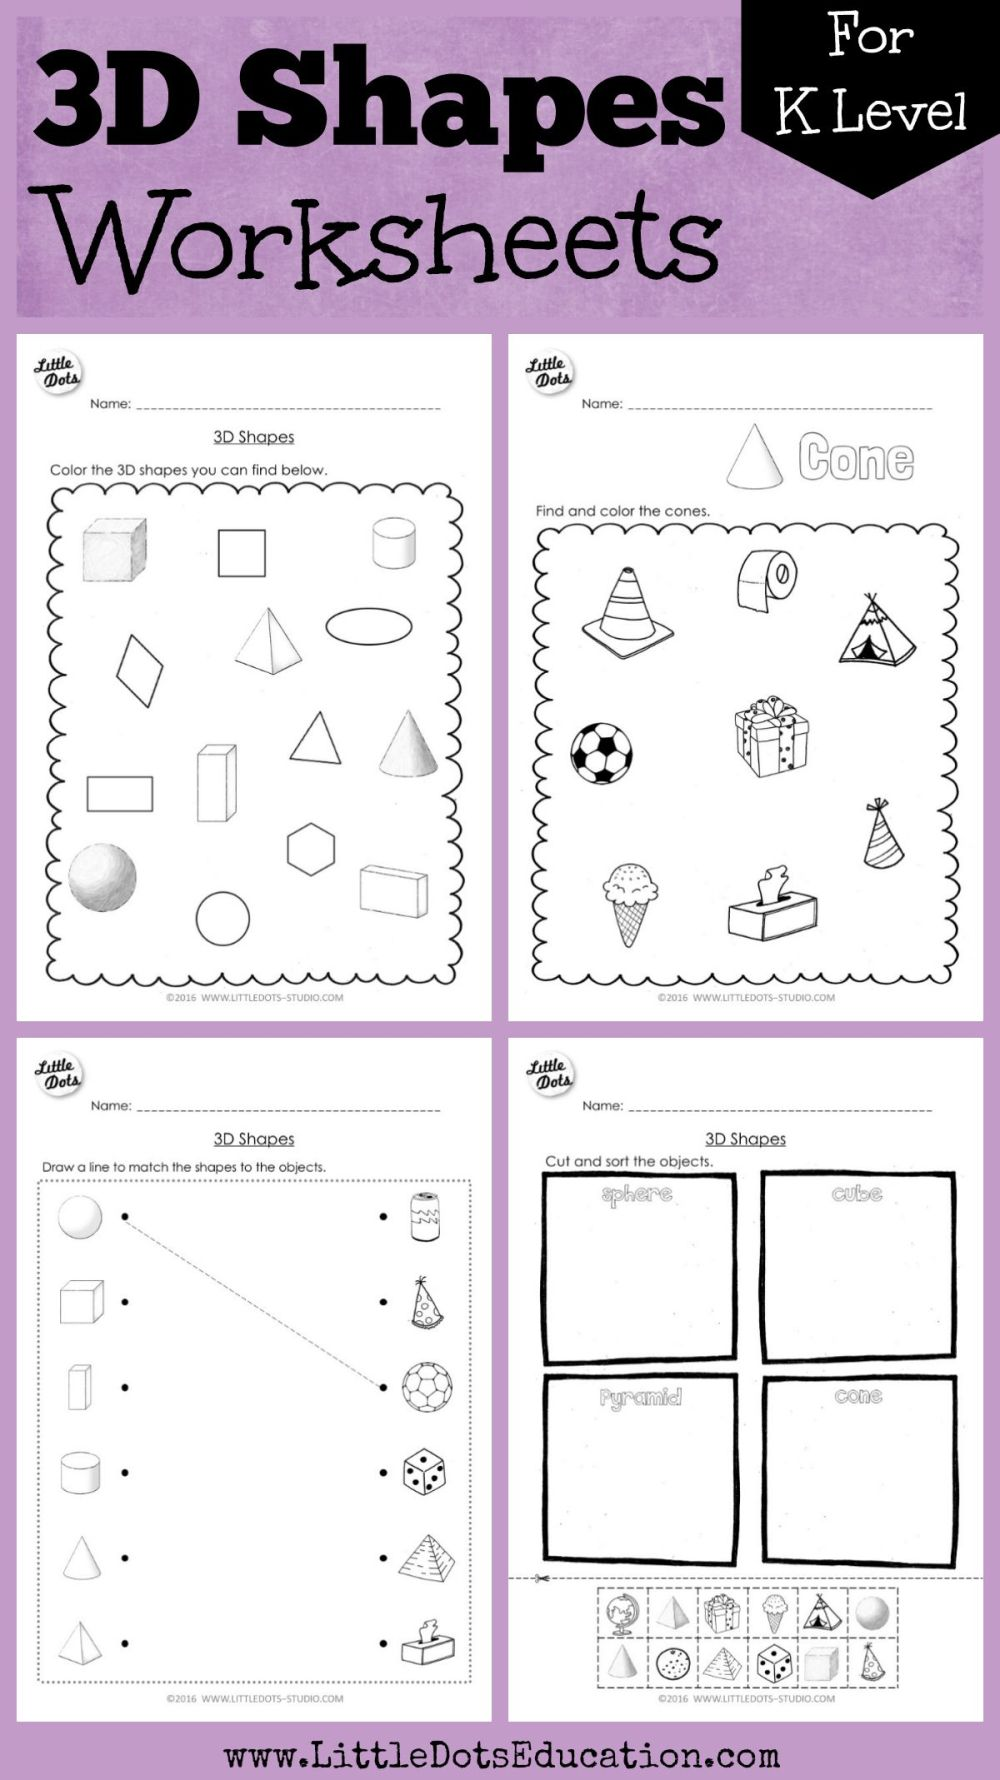 medium resolution of 10 Best Cuboid Worksheets images on Worksheets Ideas